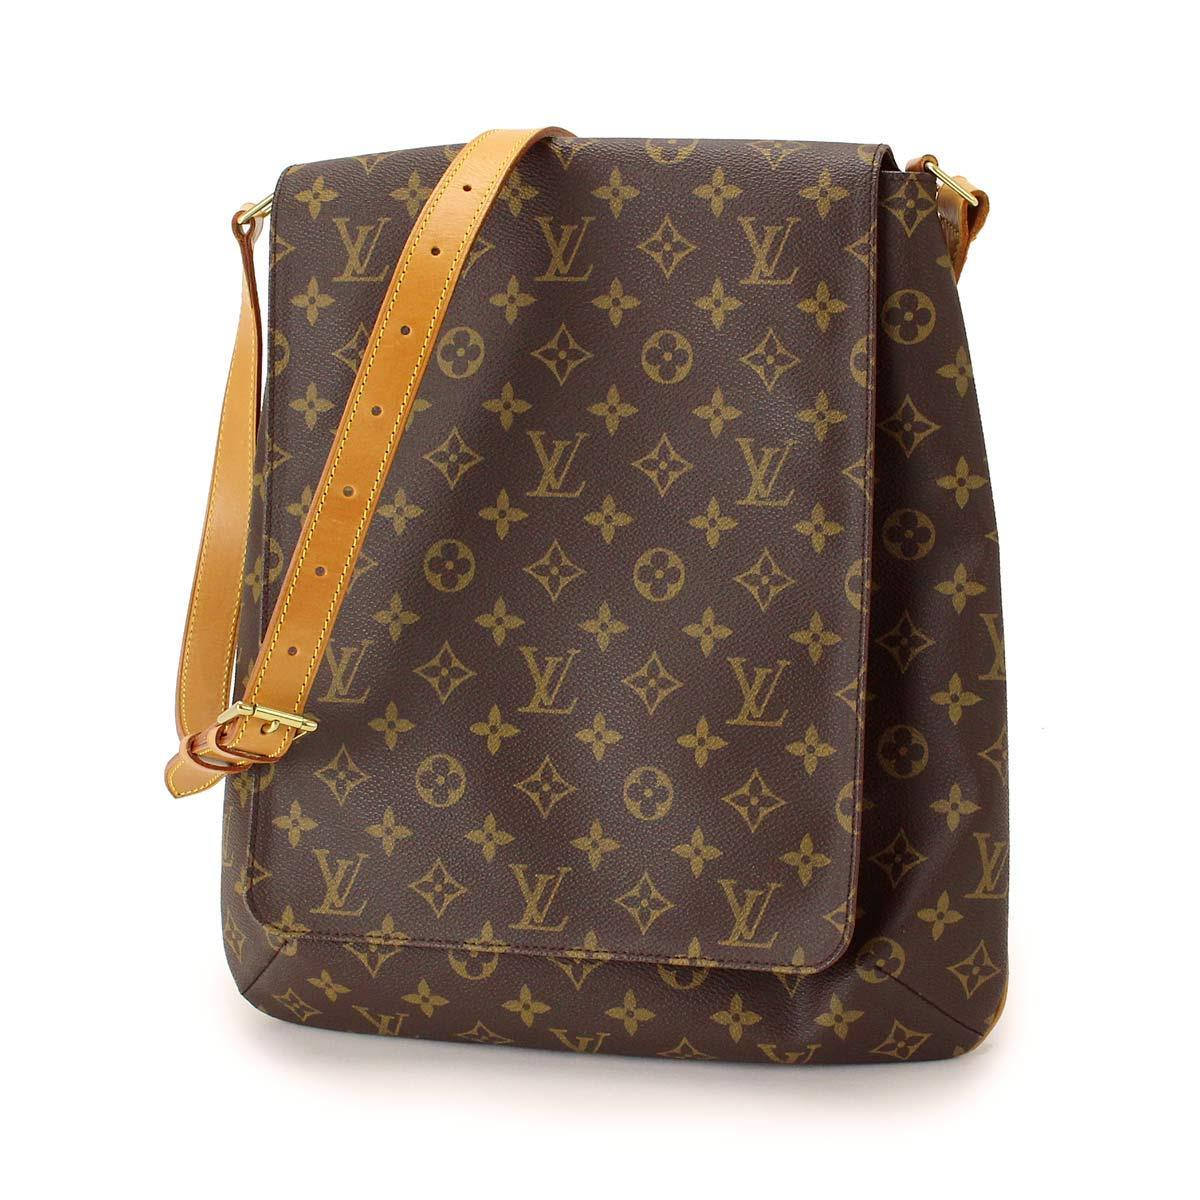 auth louis vuitton monogram musette shoulder bag purse m51256 90008389 ebay. Black Bedroom Furniture Sets. Home Design Ideas